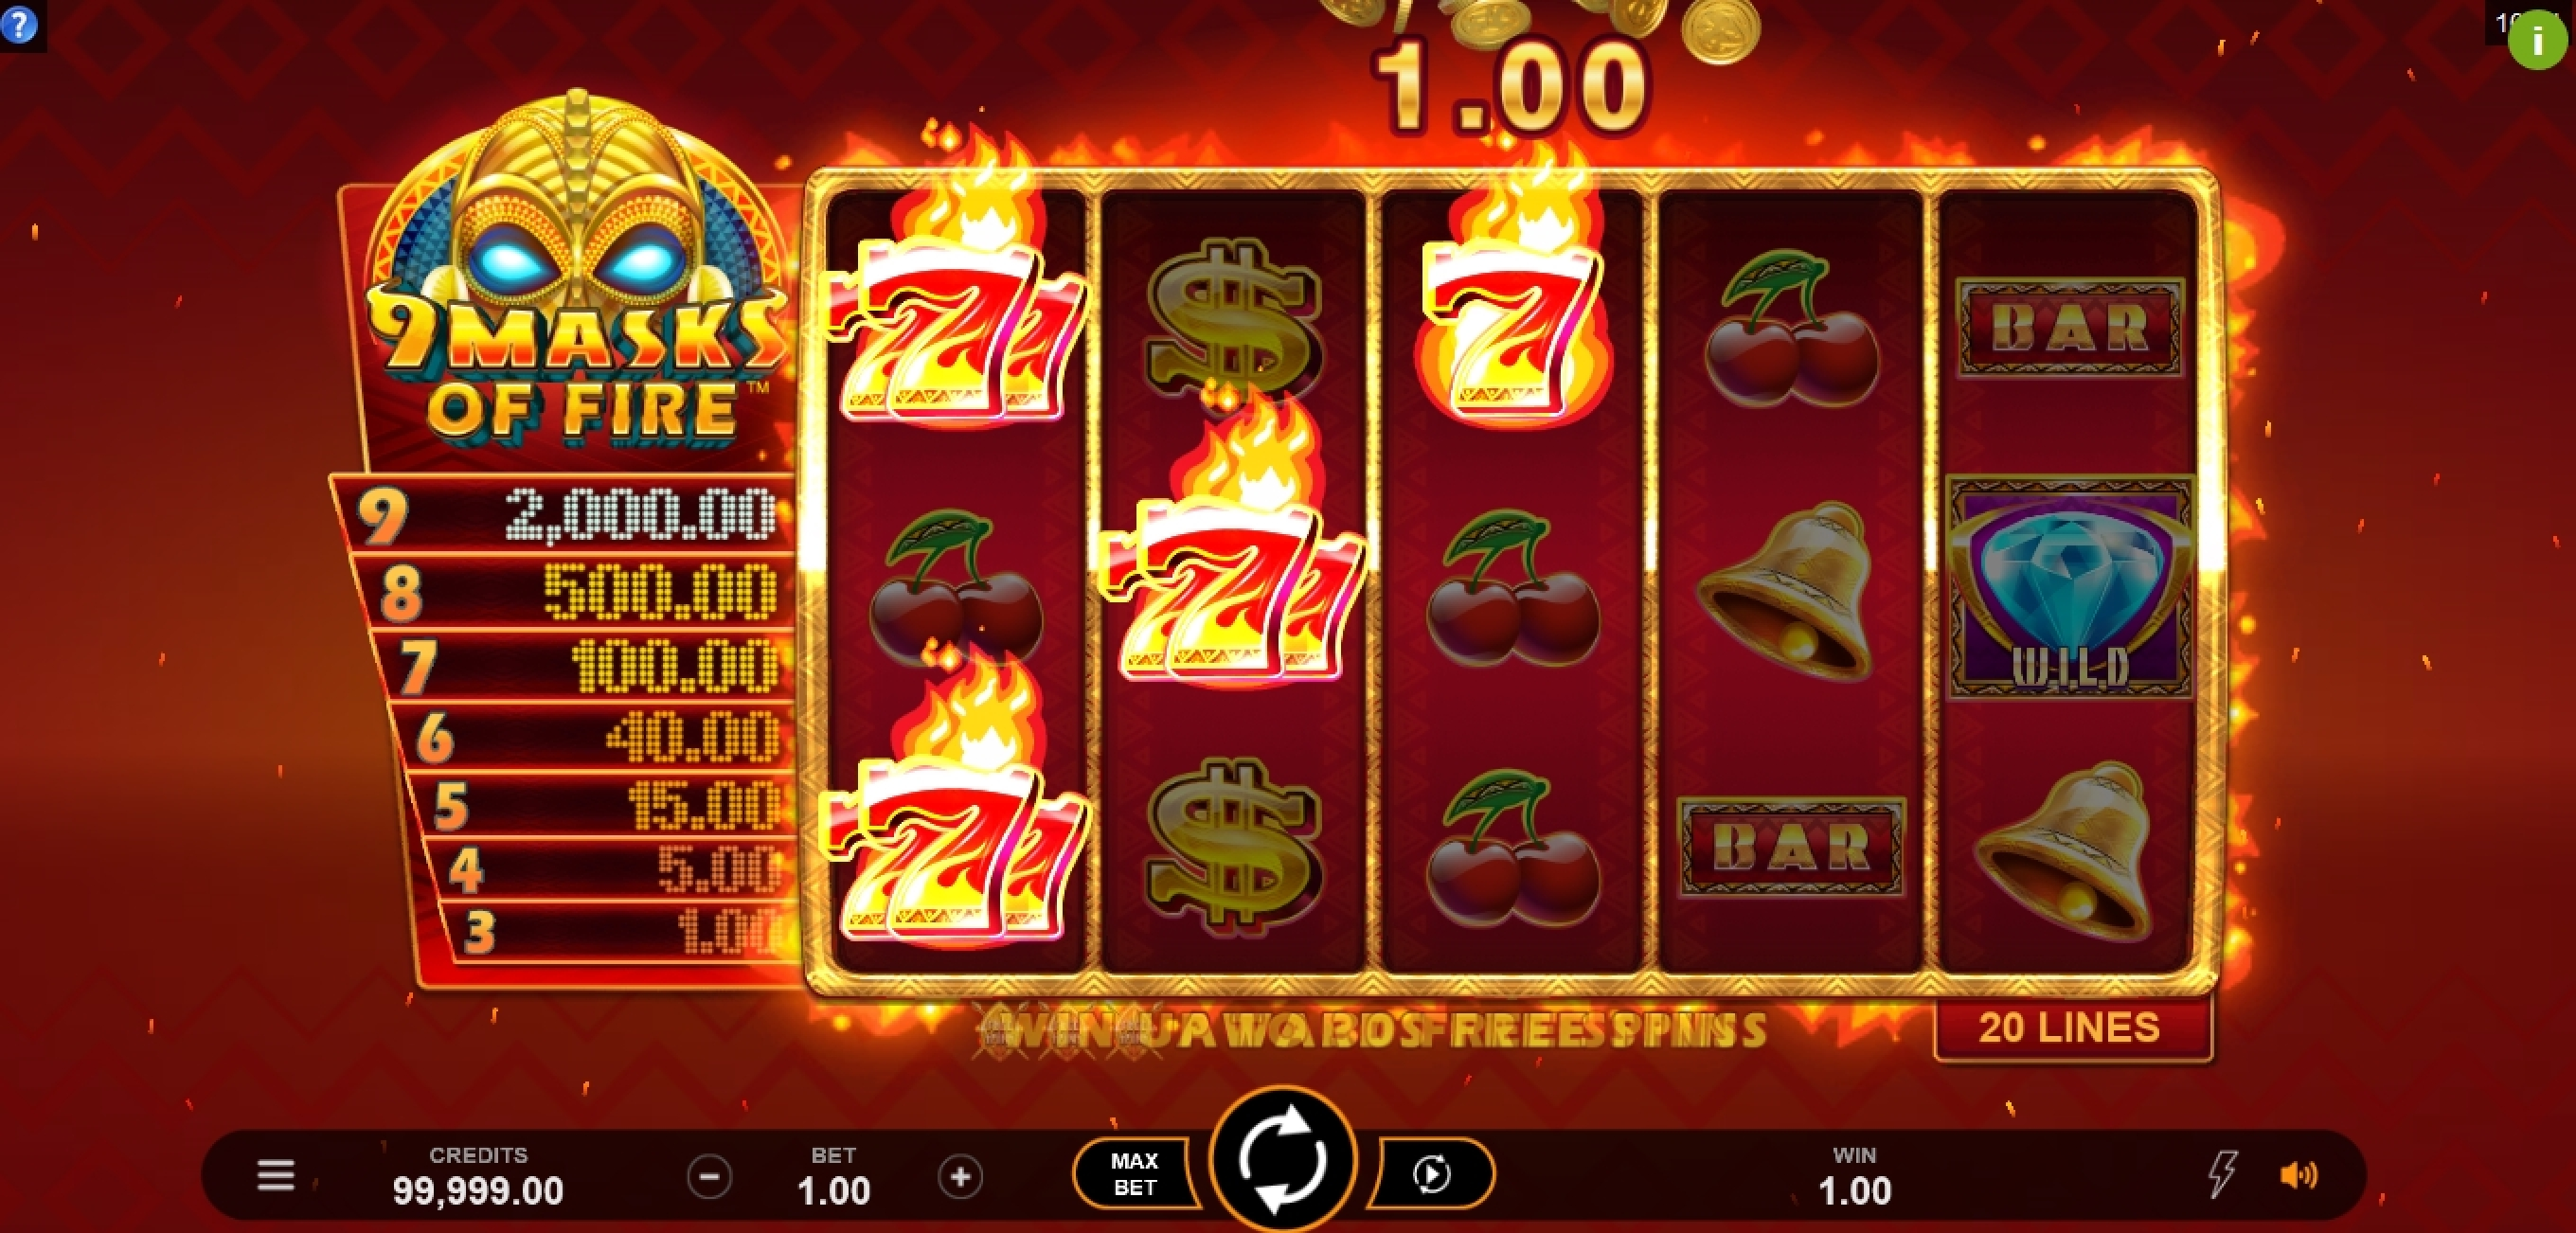 Win Money in 9 Masks Of Fire Free Slot Game by Gameburger Studios